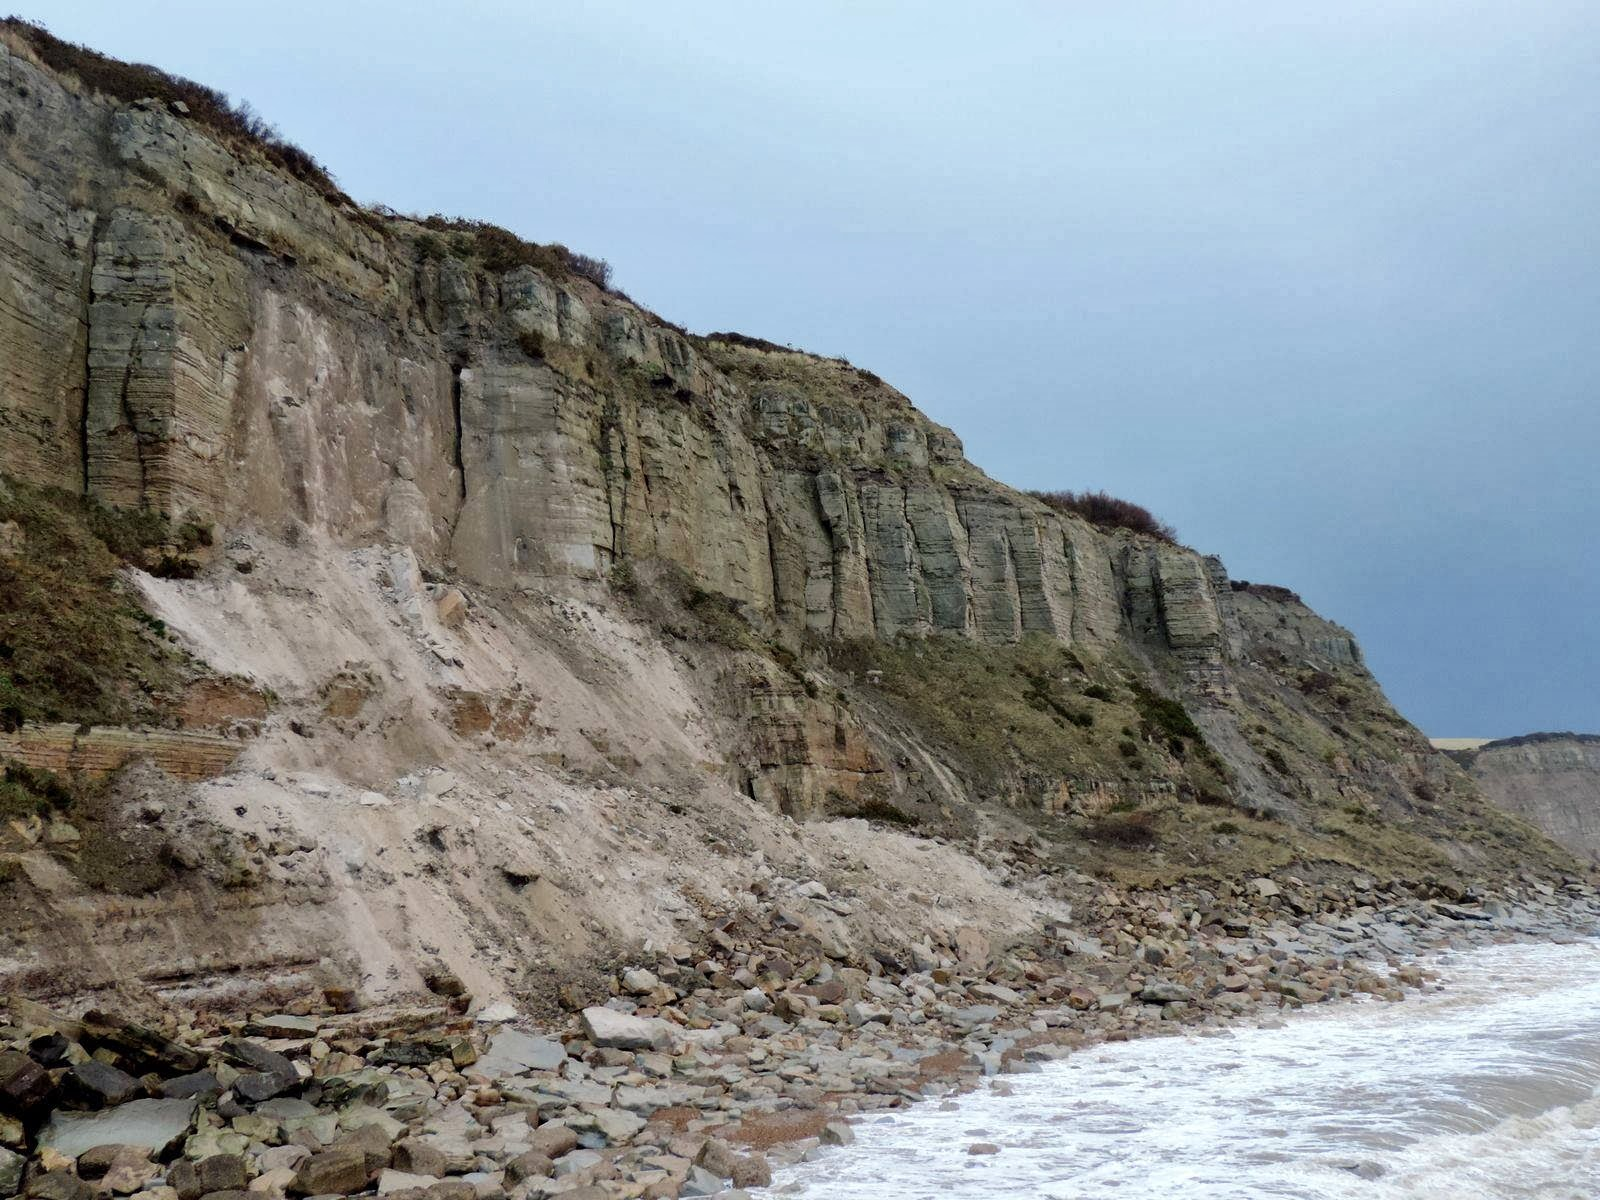 Fossil collecting with Hastings Battleaxe